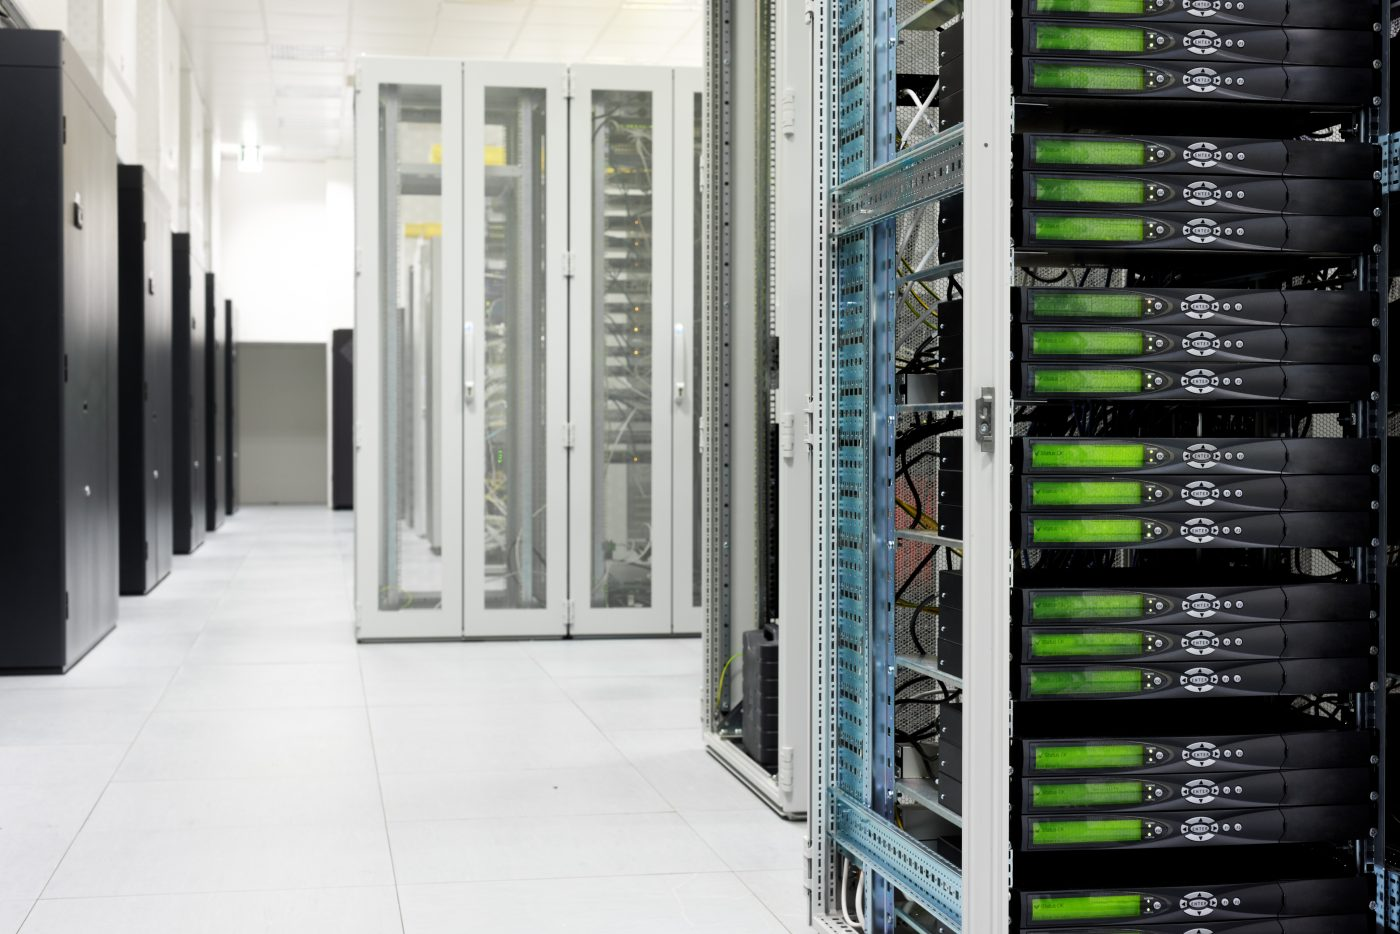 Data Center Resilience: How to Plan for the Worst to Keep on Functioning